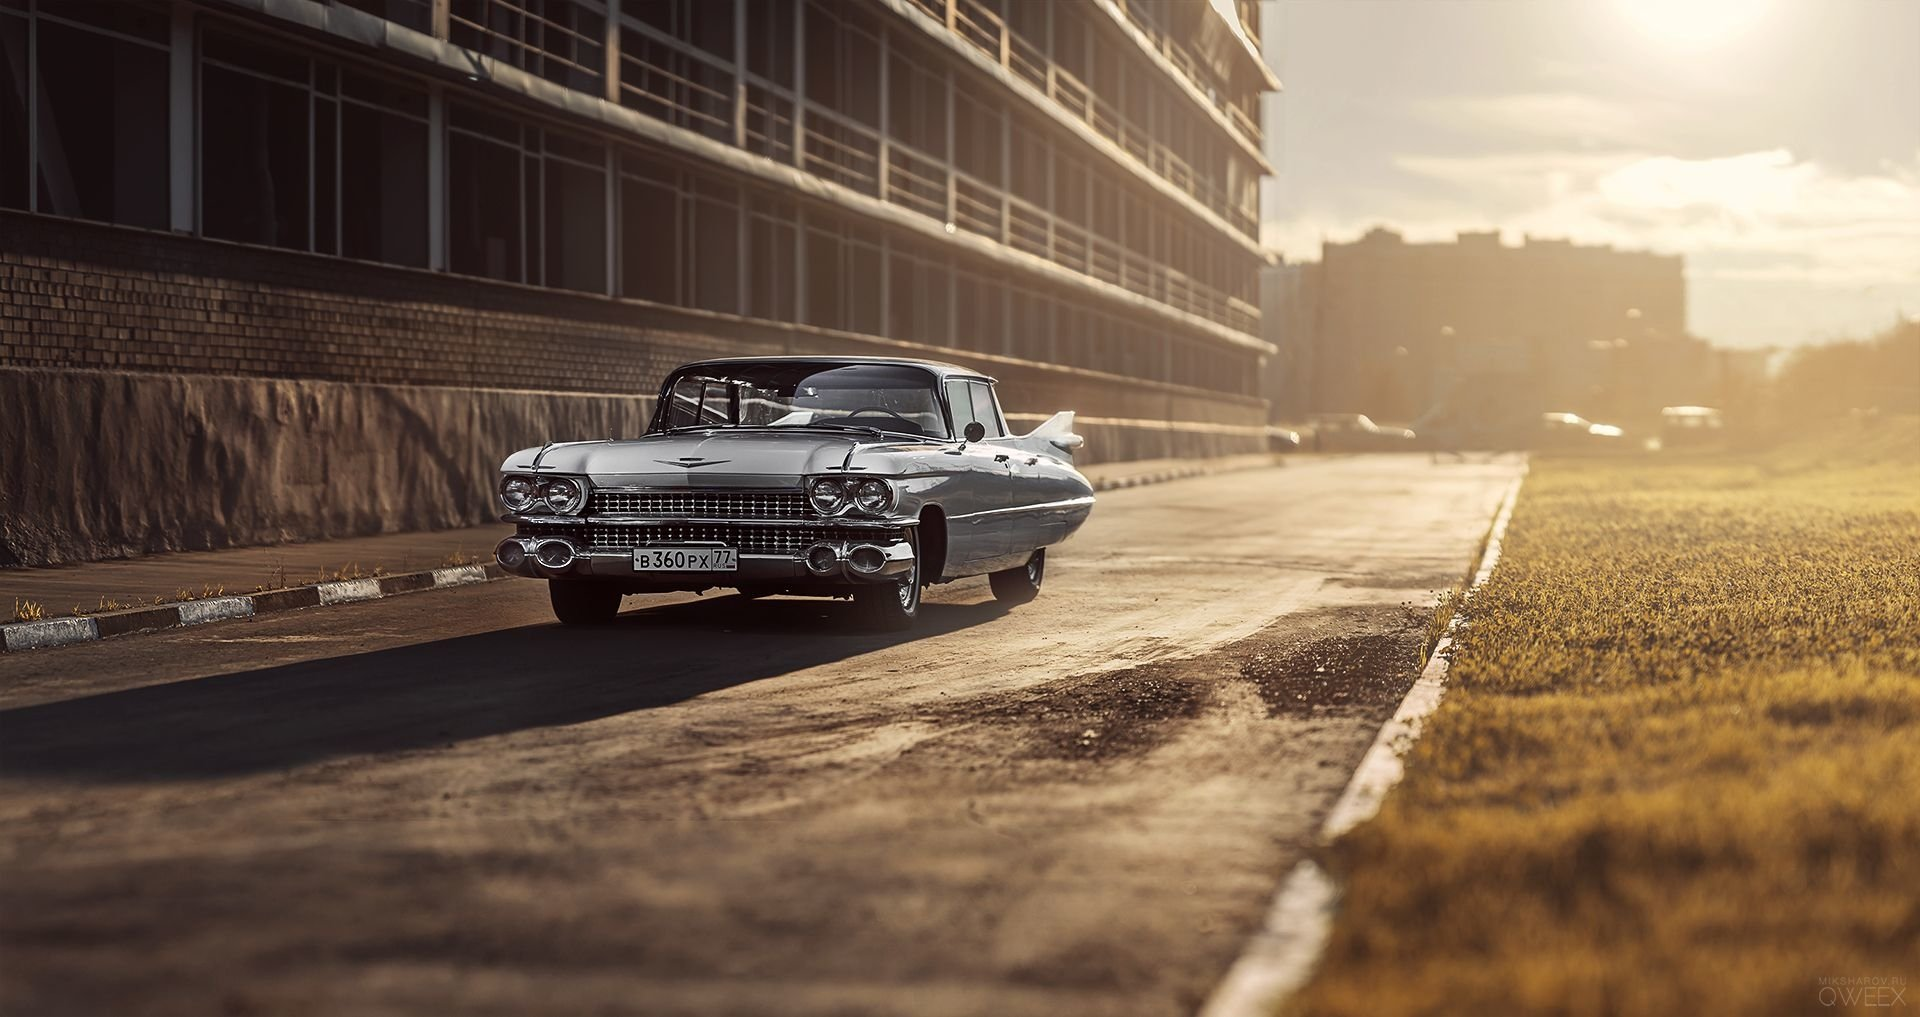 1959 Cadillac Coupe Deville Wallpaper and Background Image ...